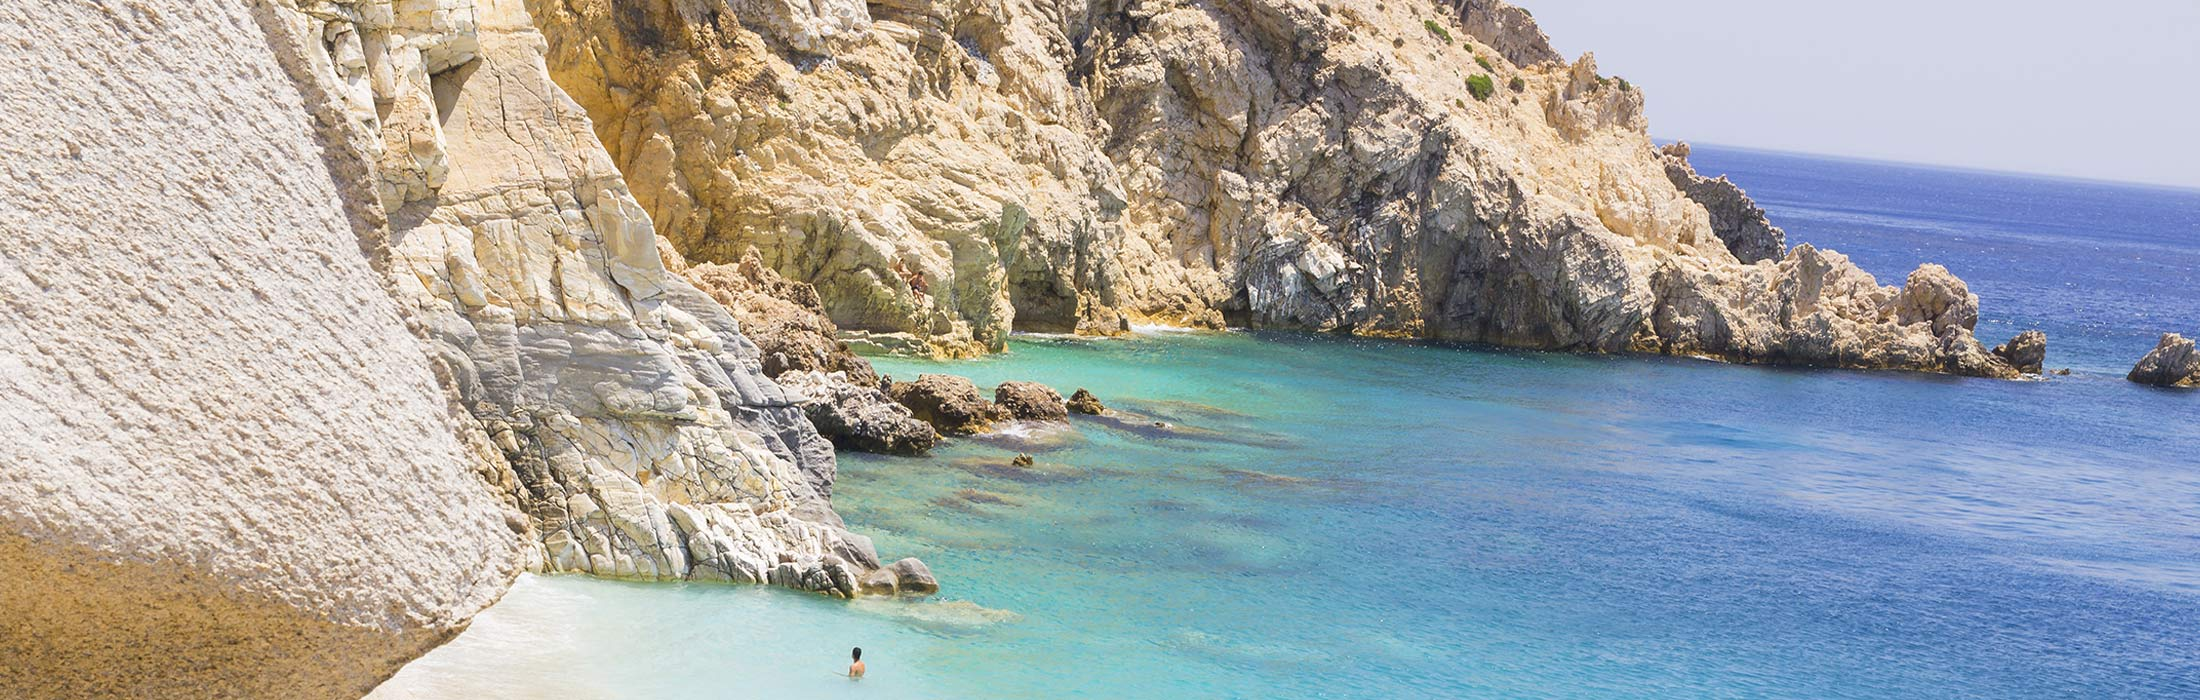 top yacht charter destinations mediterranean greece dodecanese north aegean islands ikaria main slider 1